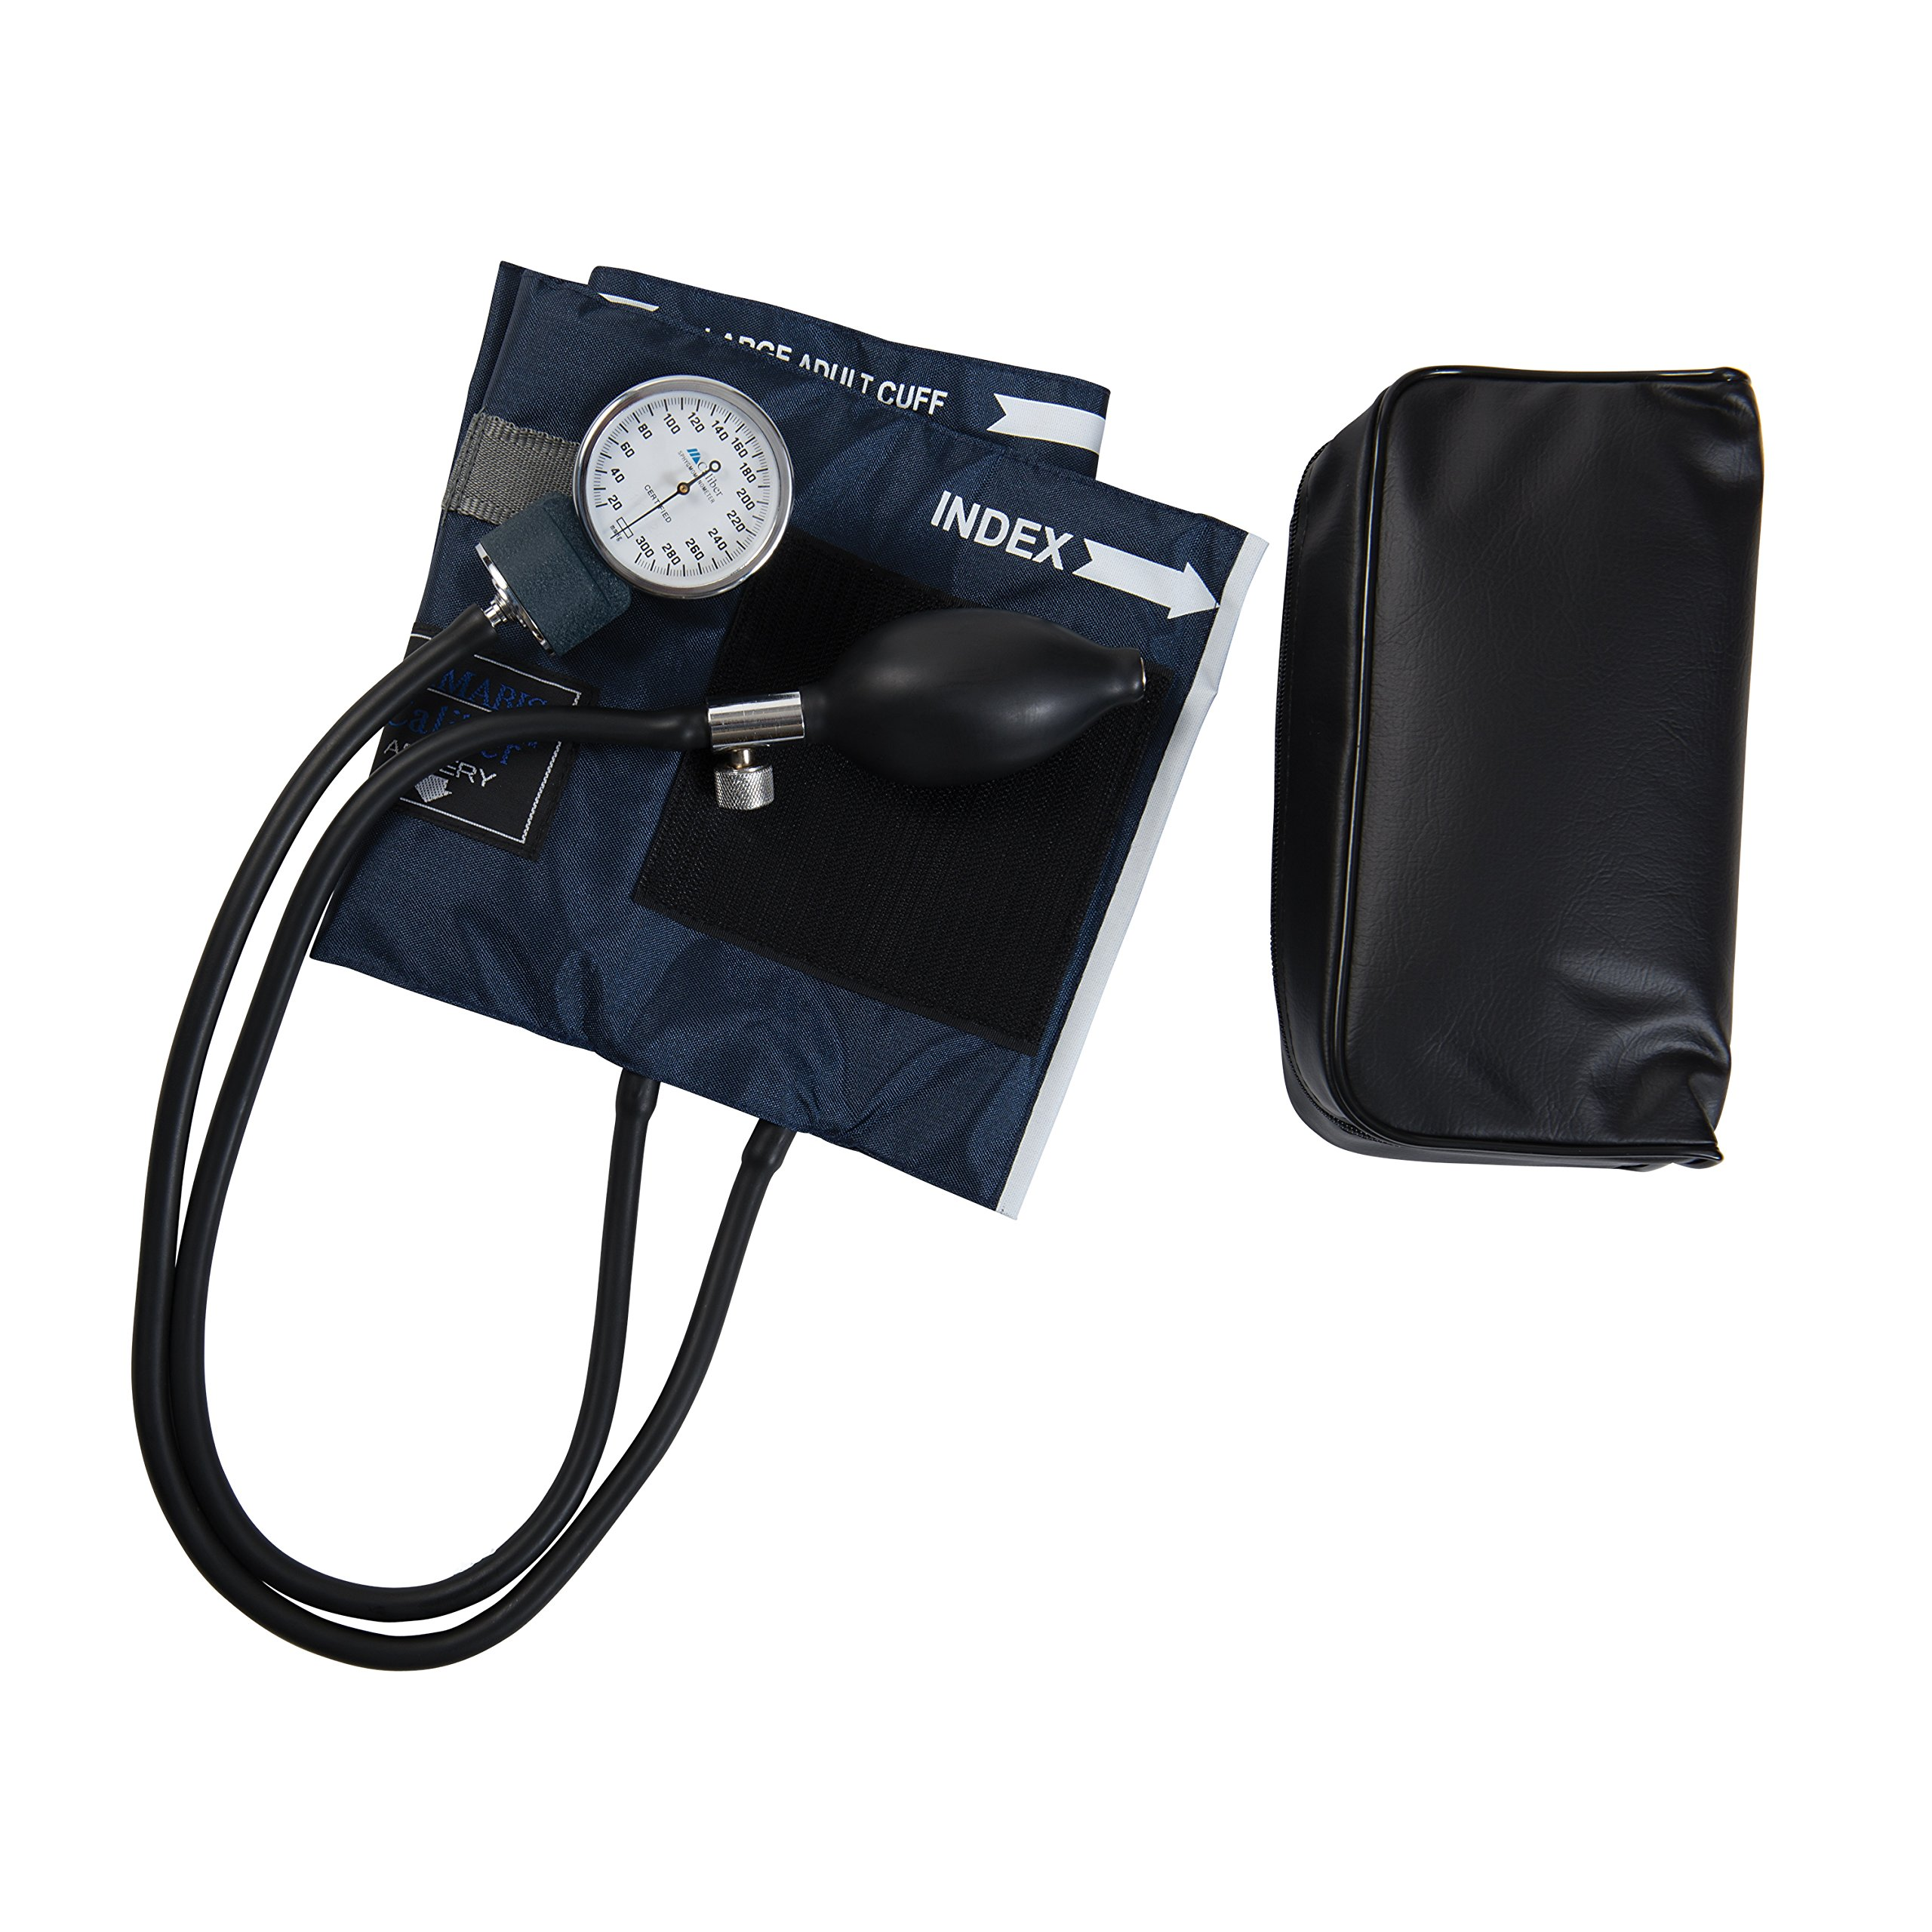 Mabis Caliber Series Aneroid Sphygmomanometer Manual Blood Pressure Monitor, Cuff Size 13 to 20 Inches, Large Adult